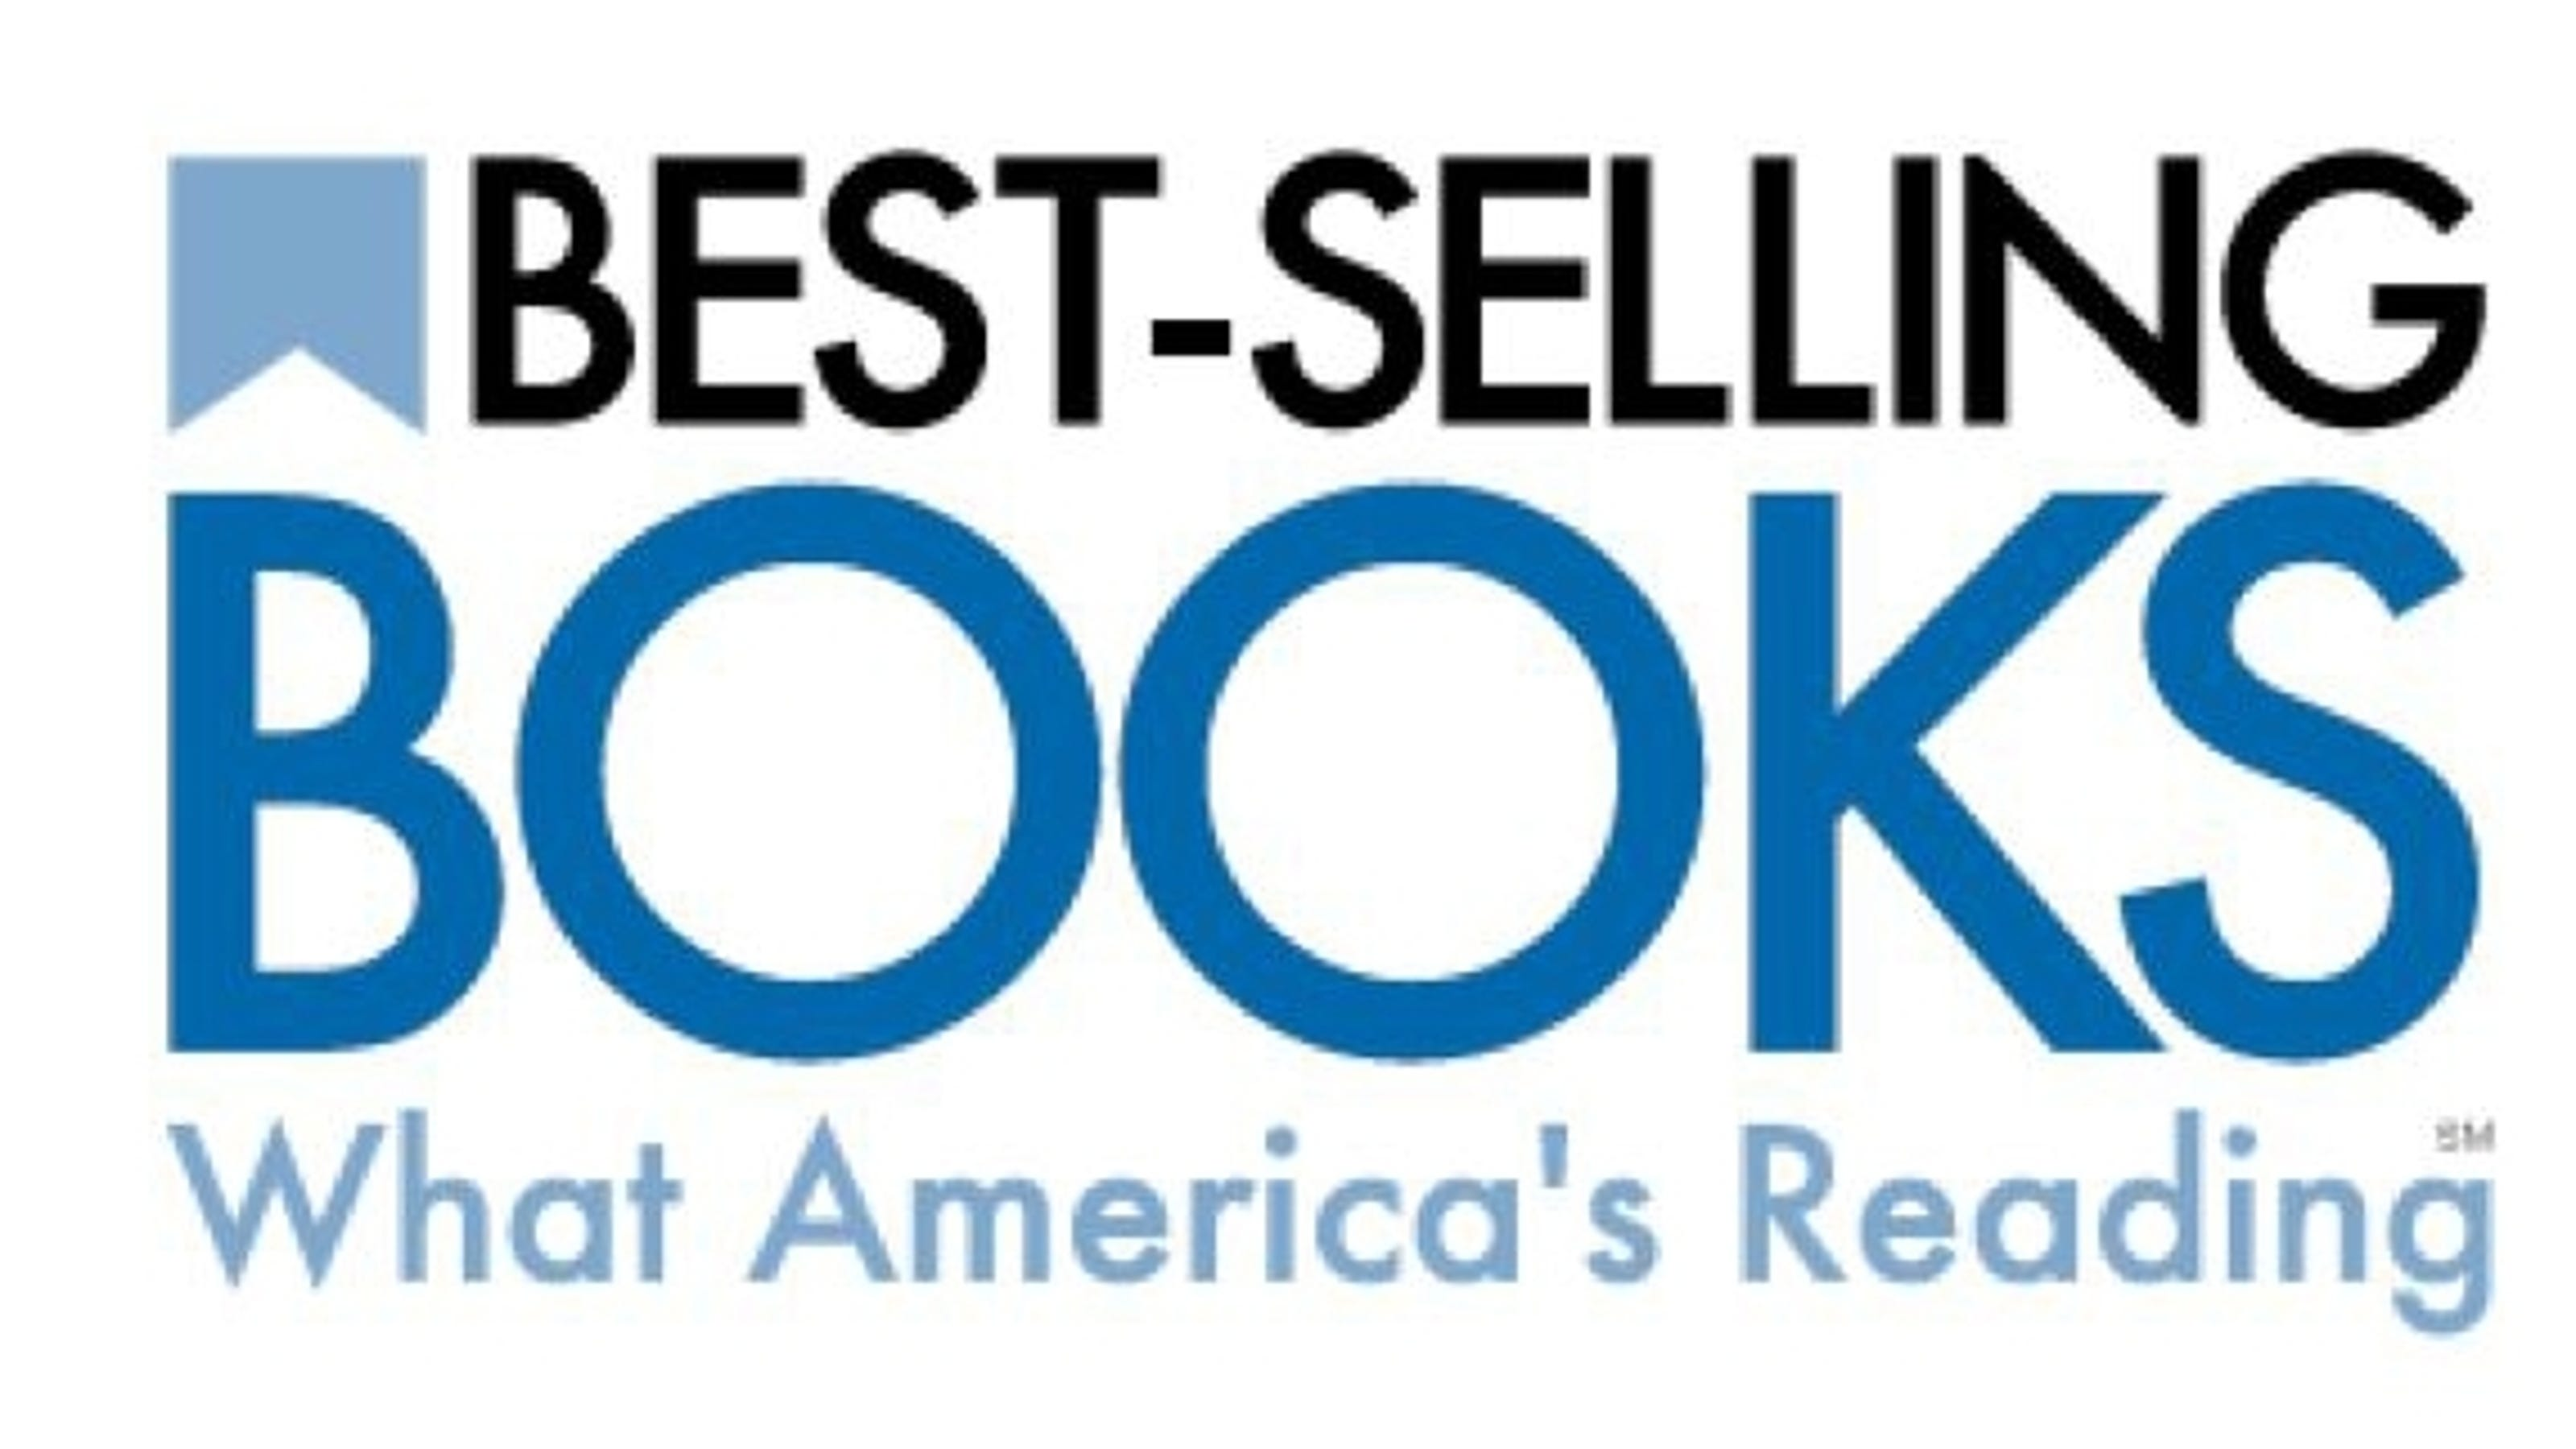 100 Best-selling Books Of 2012, From The Top Down